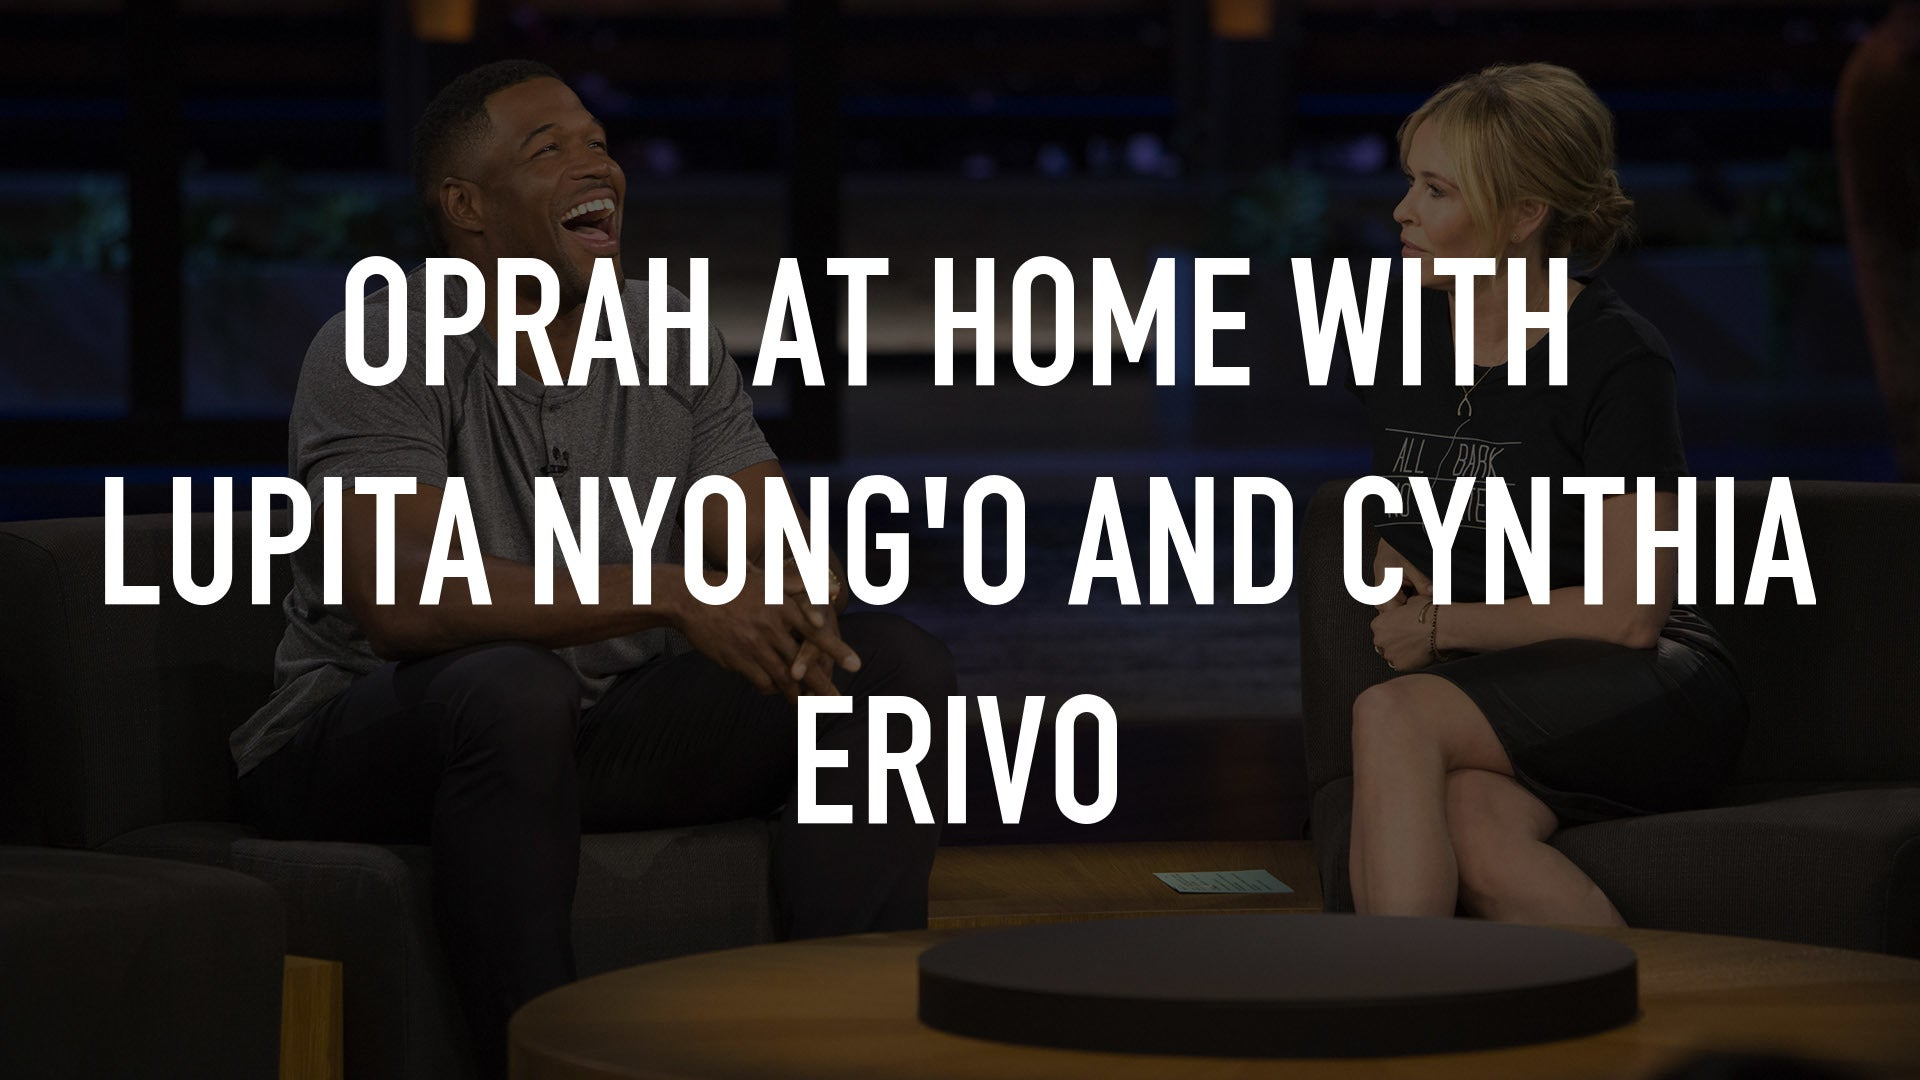 Oprah At Home with Lupita Nyong'o and Cynthia Erivo